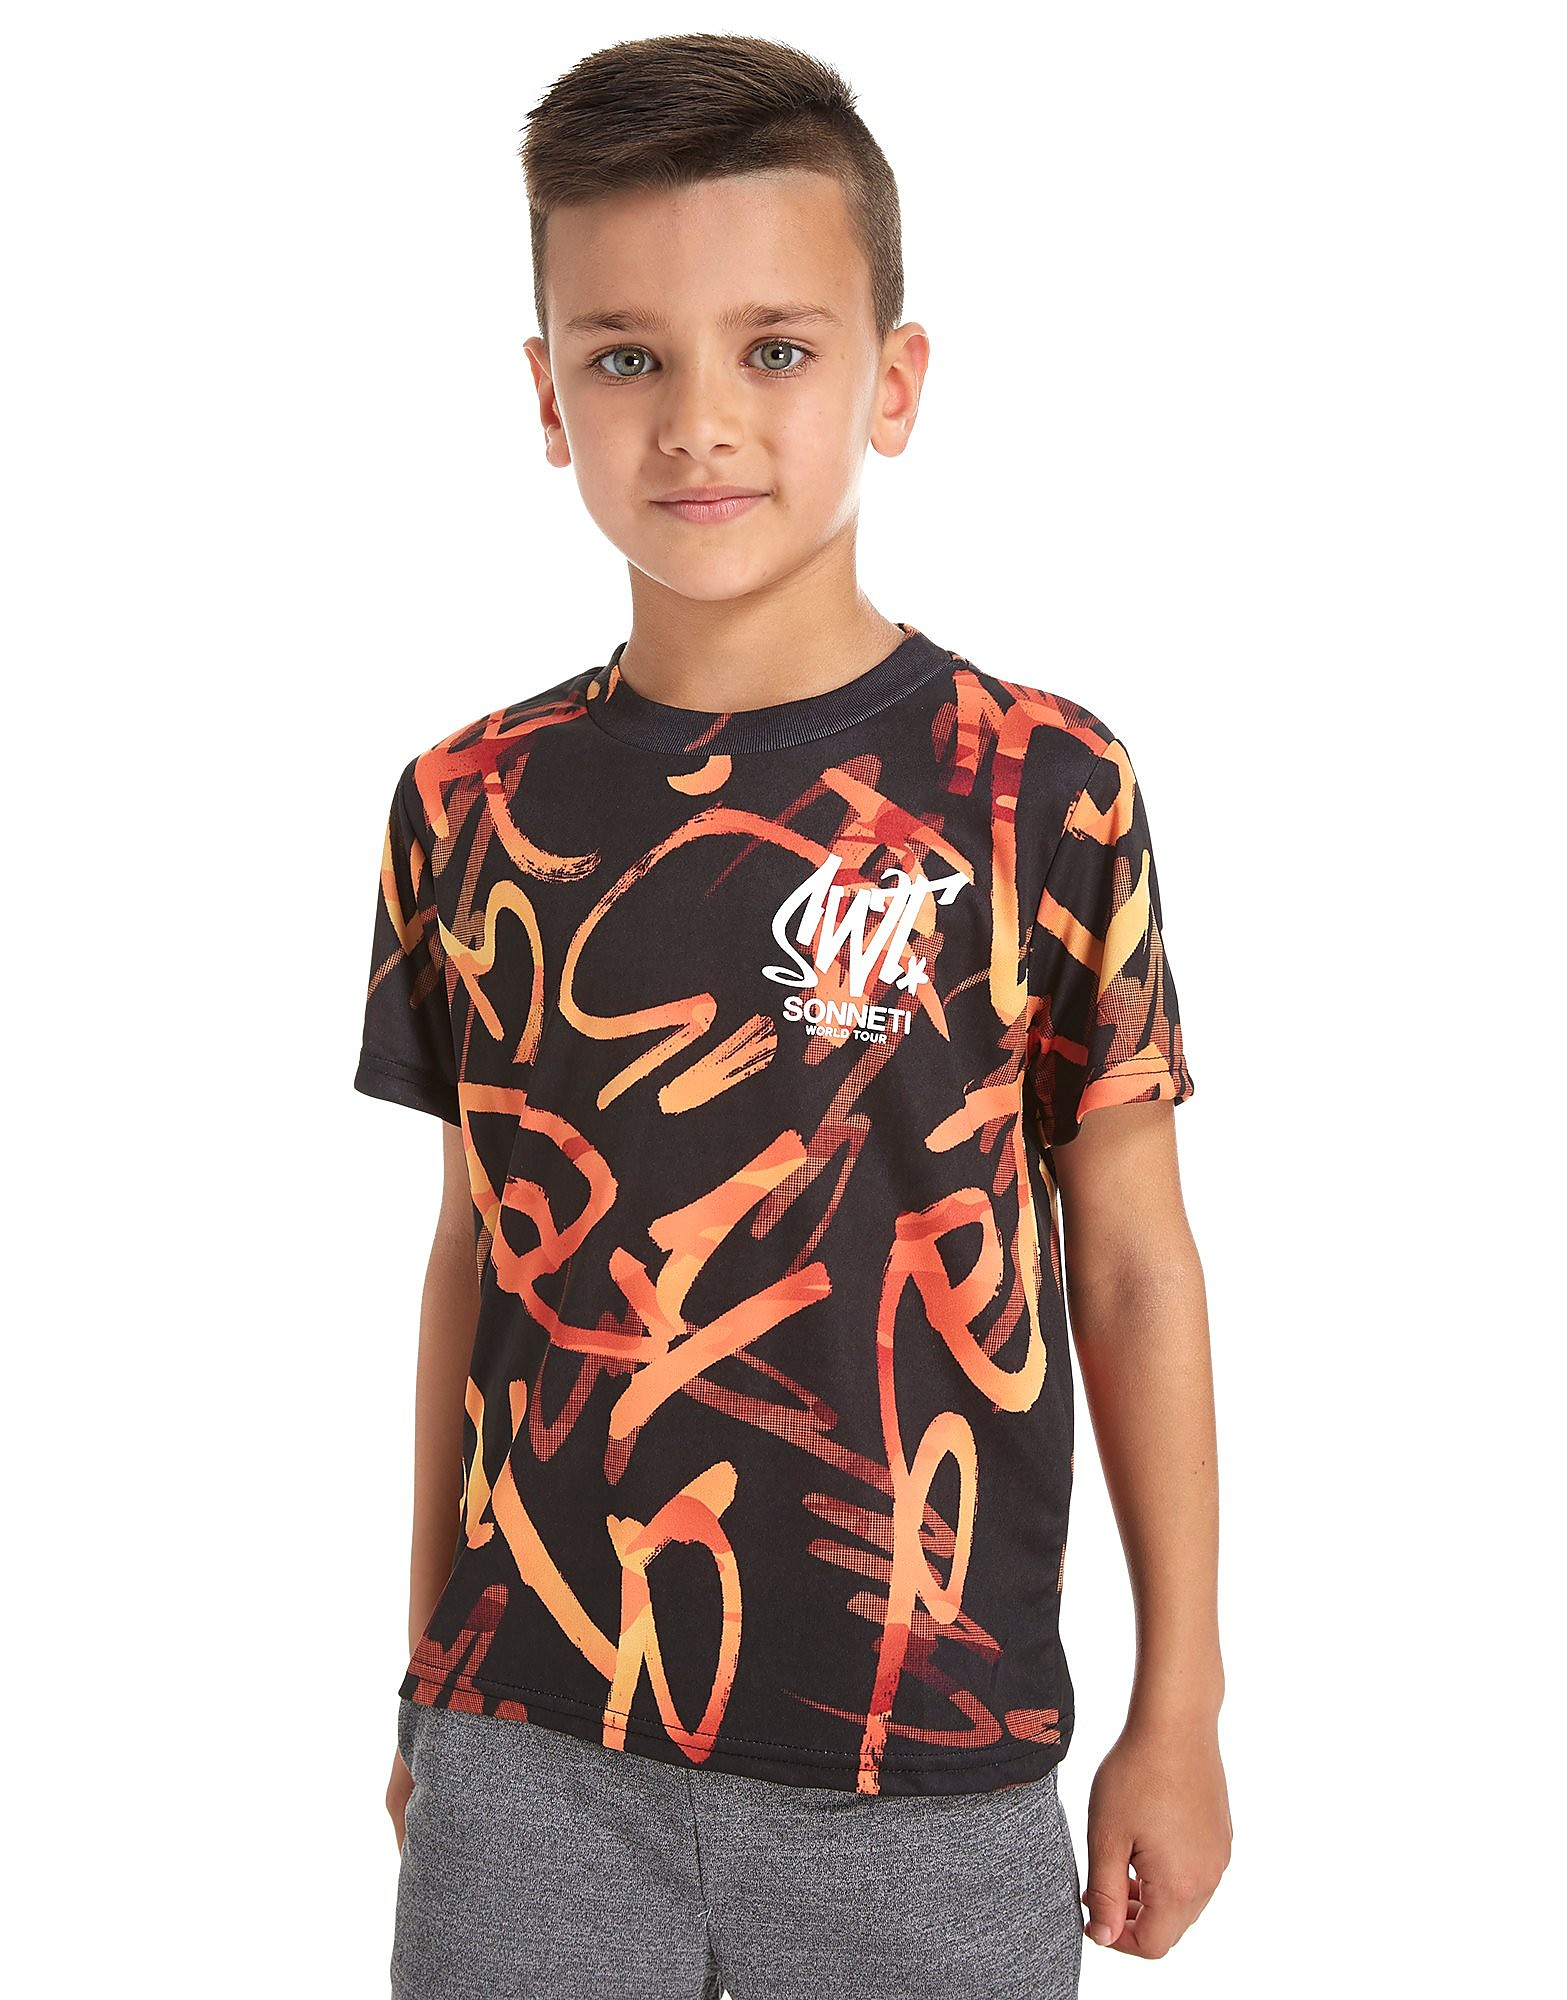 Sonneti Dimil T-Shirt Childrens